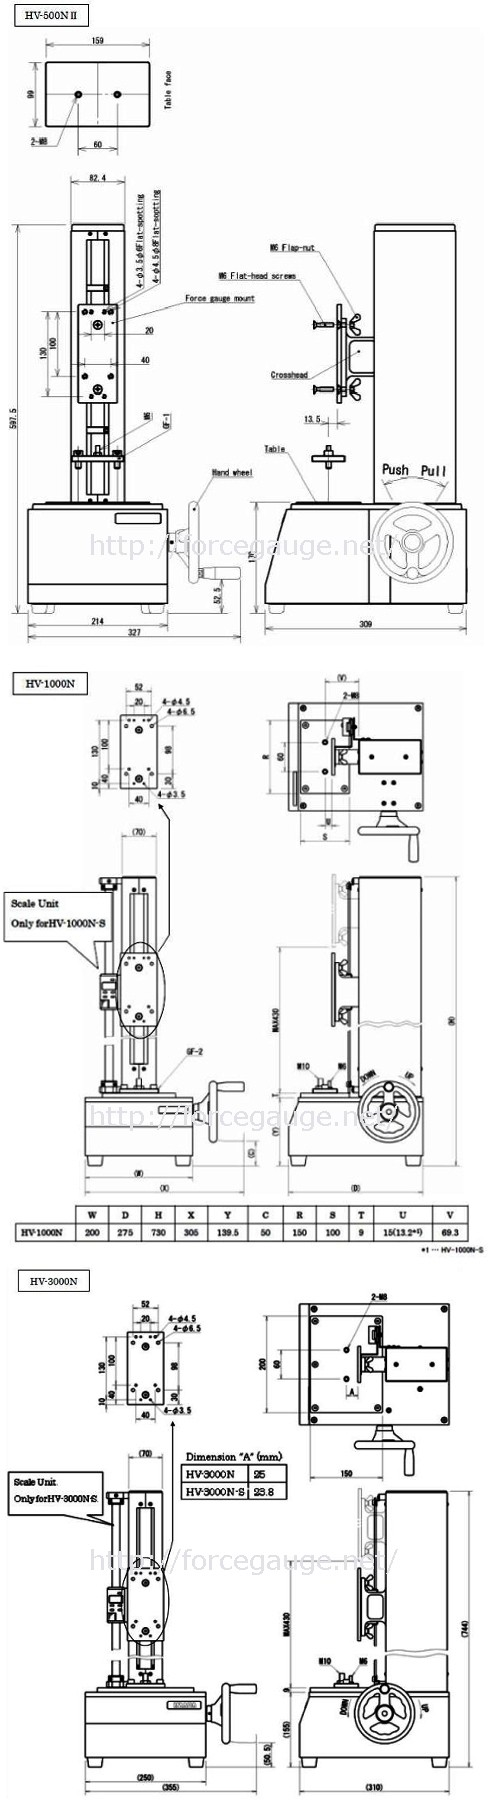 Dimensions for HV series Manual force tester